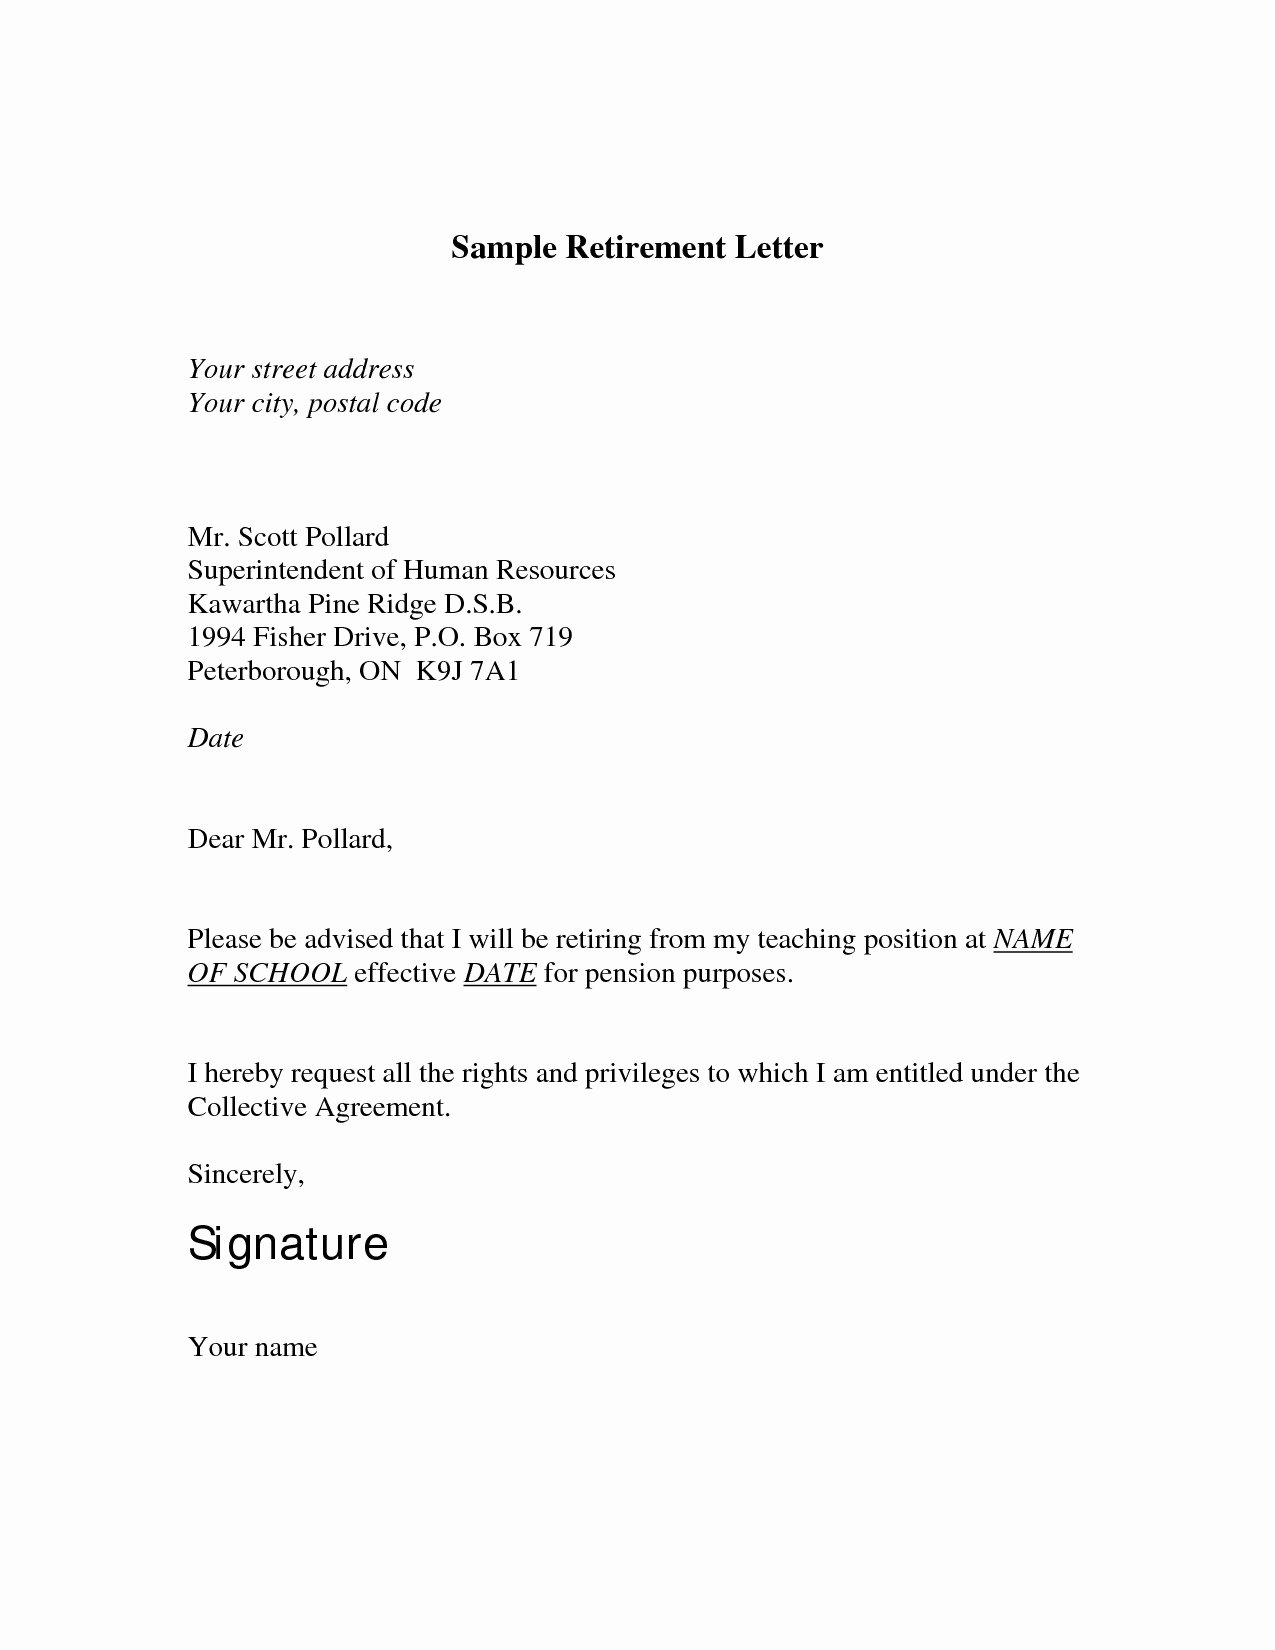 Sample Teacher Retirement Letter Awesome Retirement Letter to Employer Template Samples